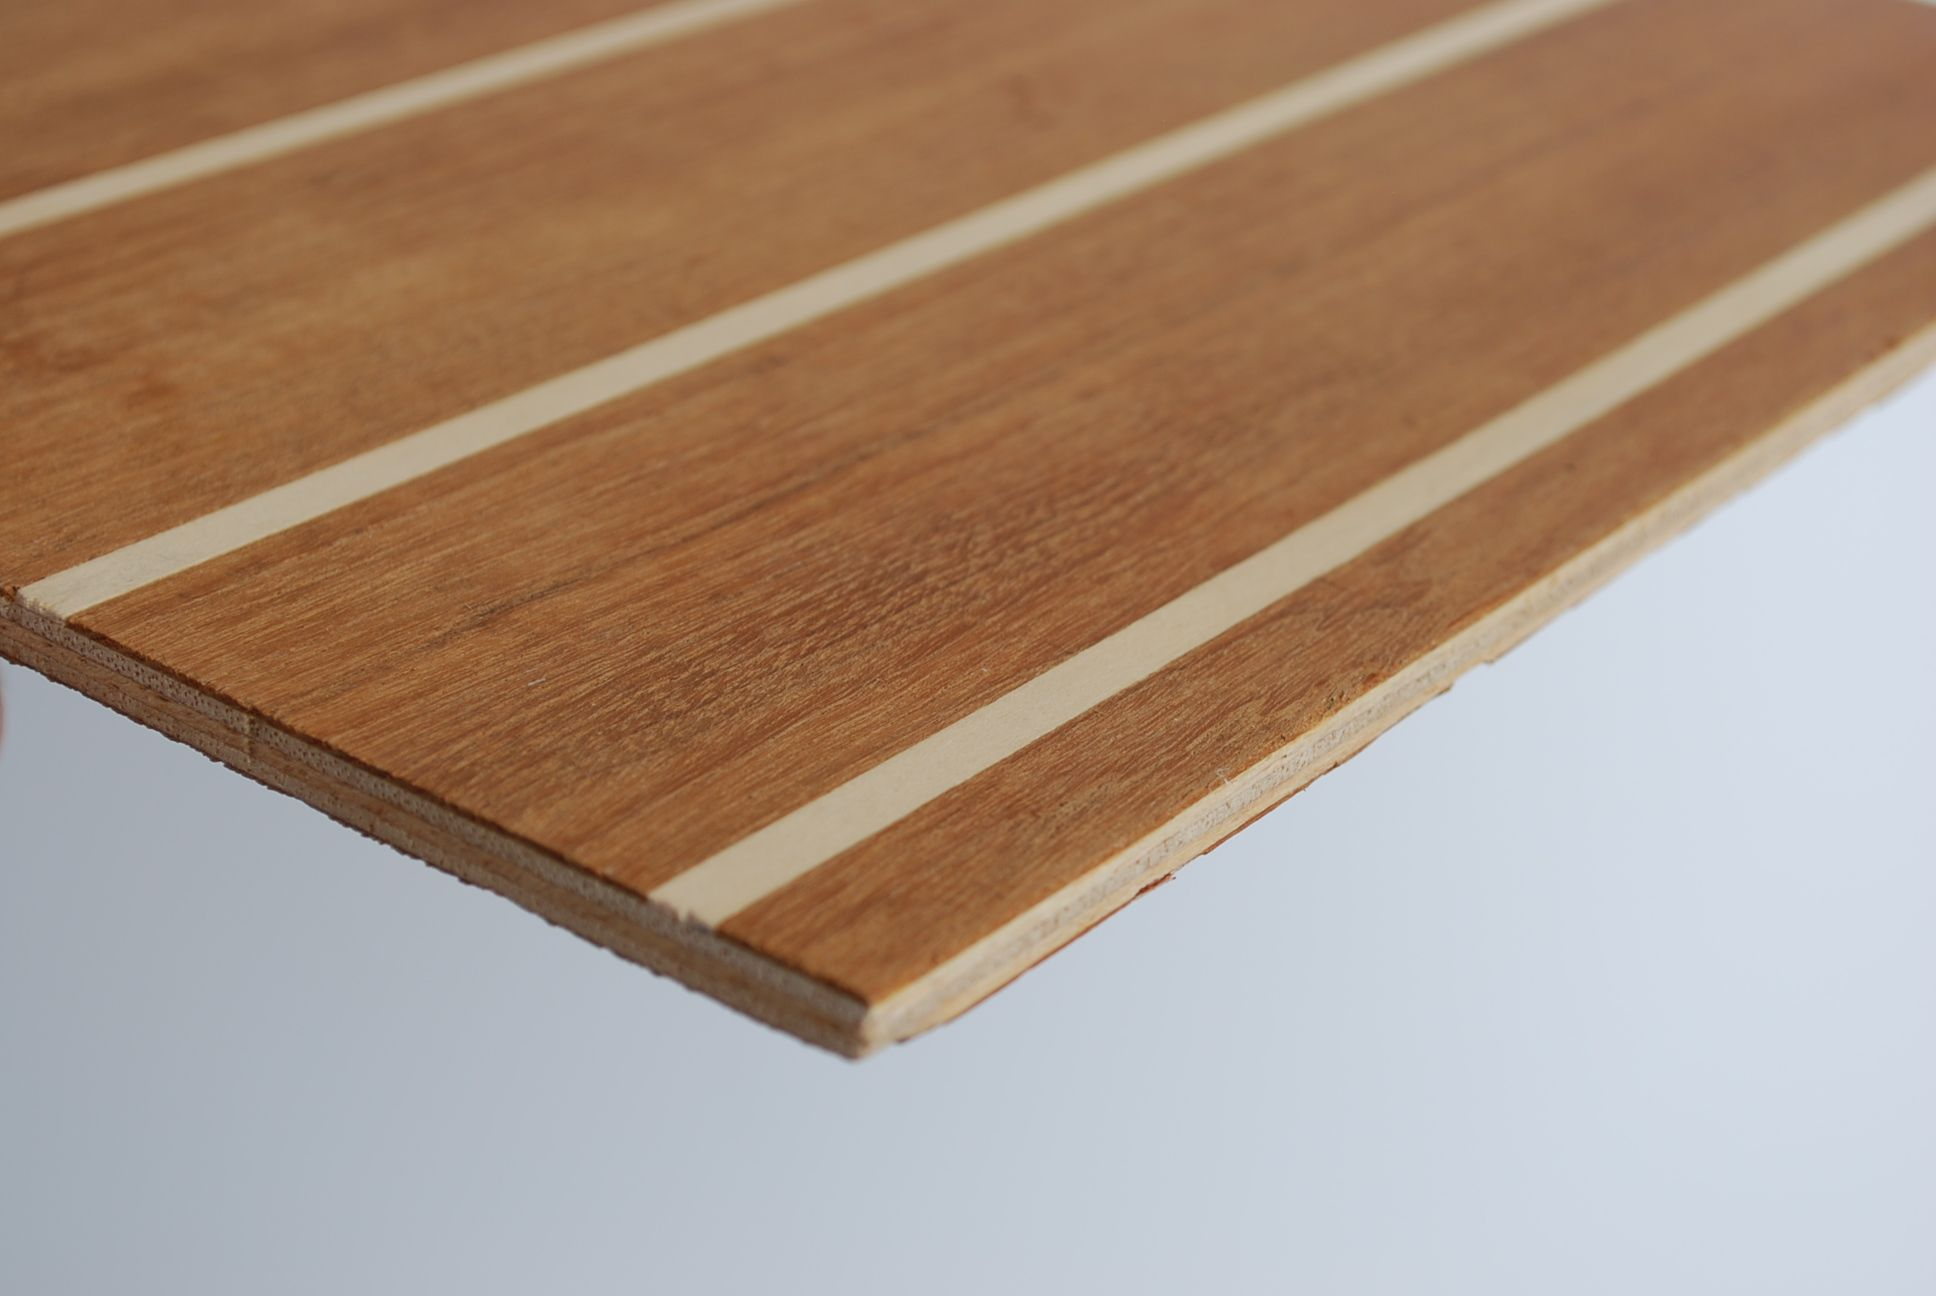 Leading Manufacture Of Plywood Products Film Faced Plywood Veneer Plywood Form Work Panels Anti Slip Plywood Marine Plywood De Madeira Laminado Interiores